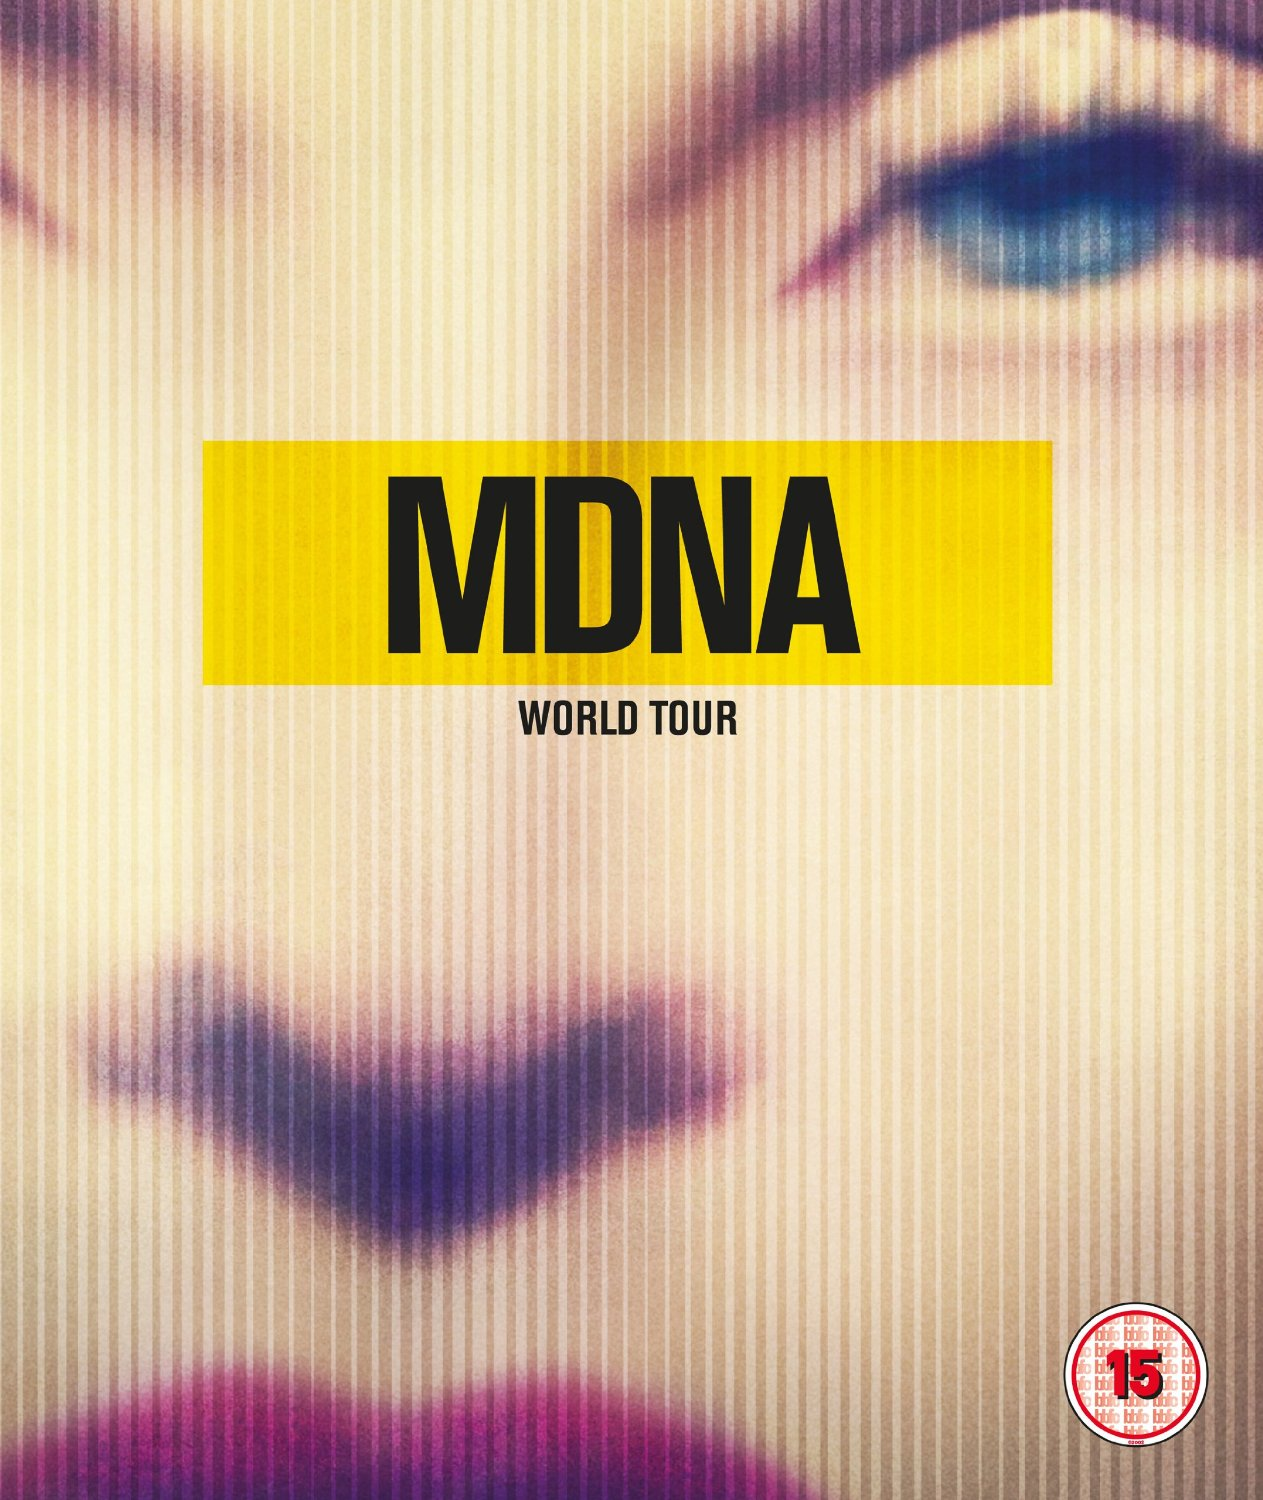 MADONNA MDNA WORLD TOUR BLURAY DVD FRONT